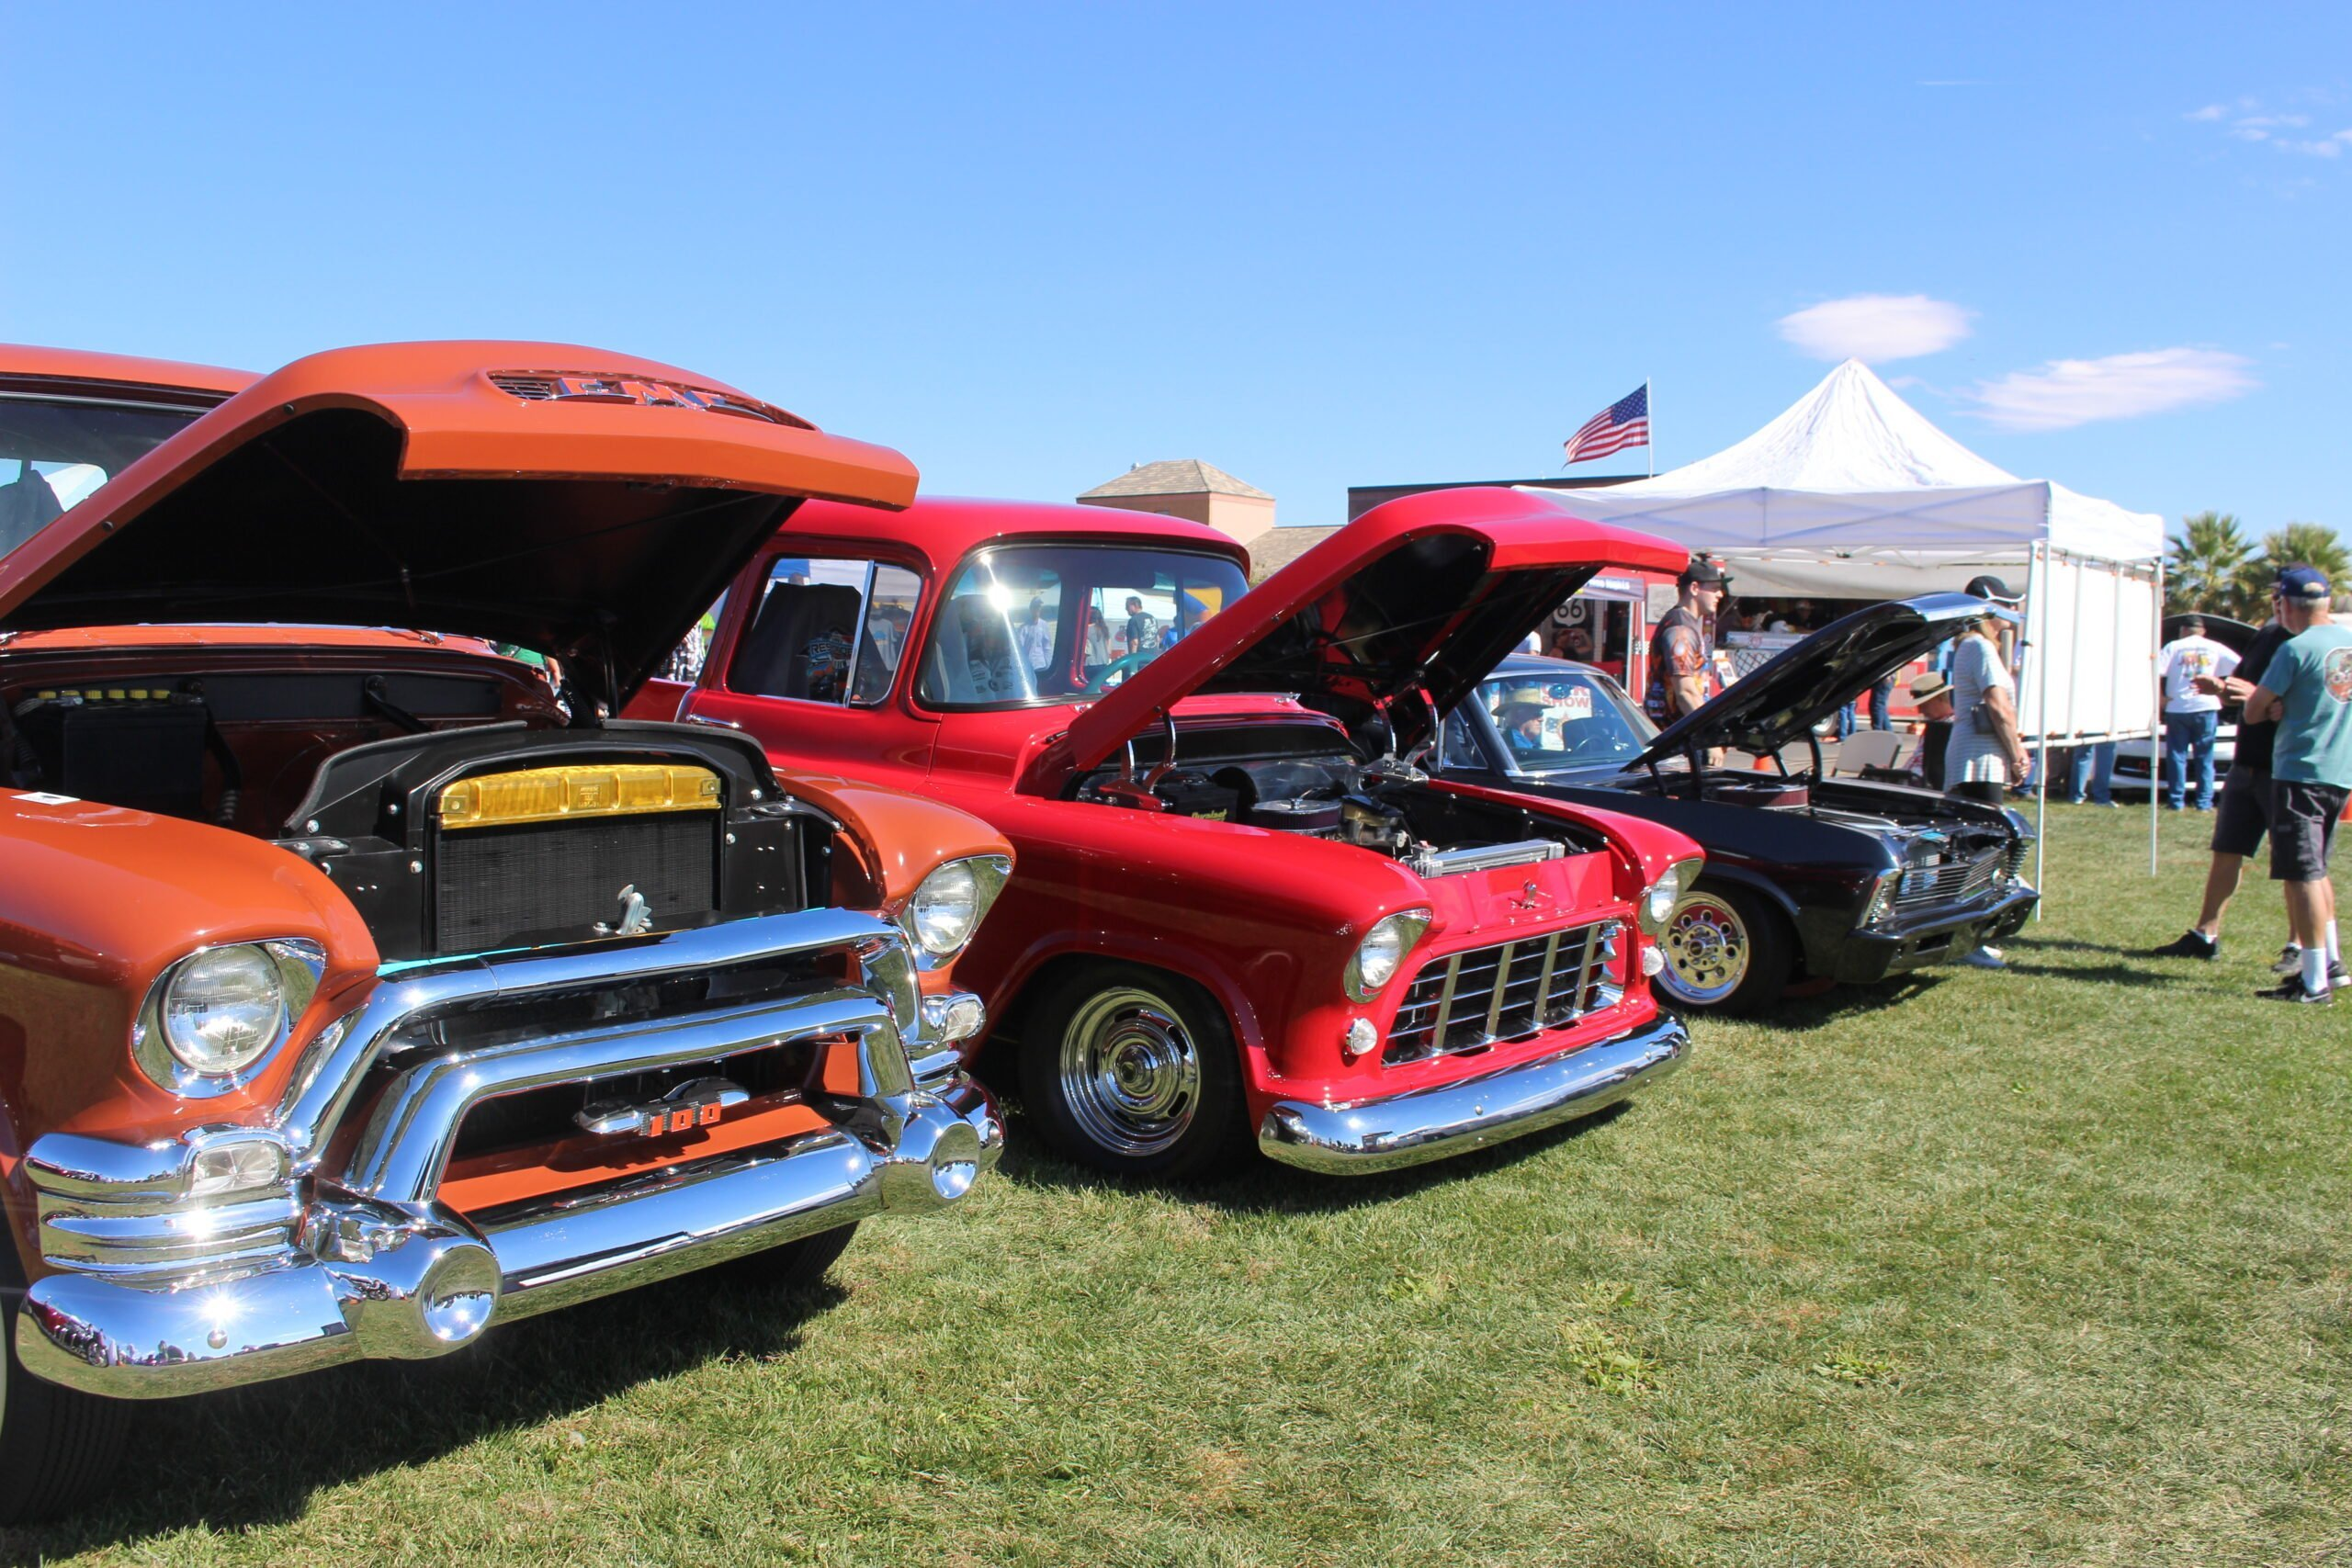 Biggest car show yet coming to Brio to benefit Project